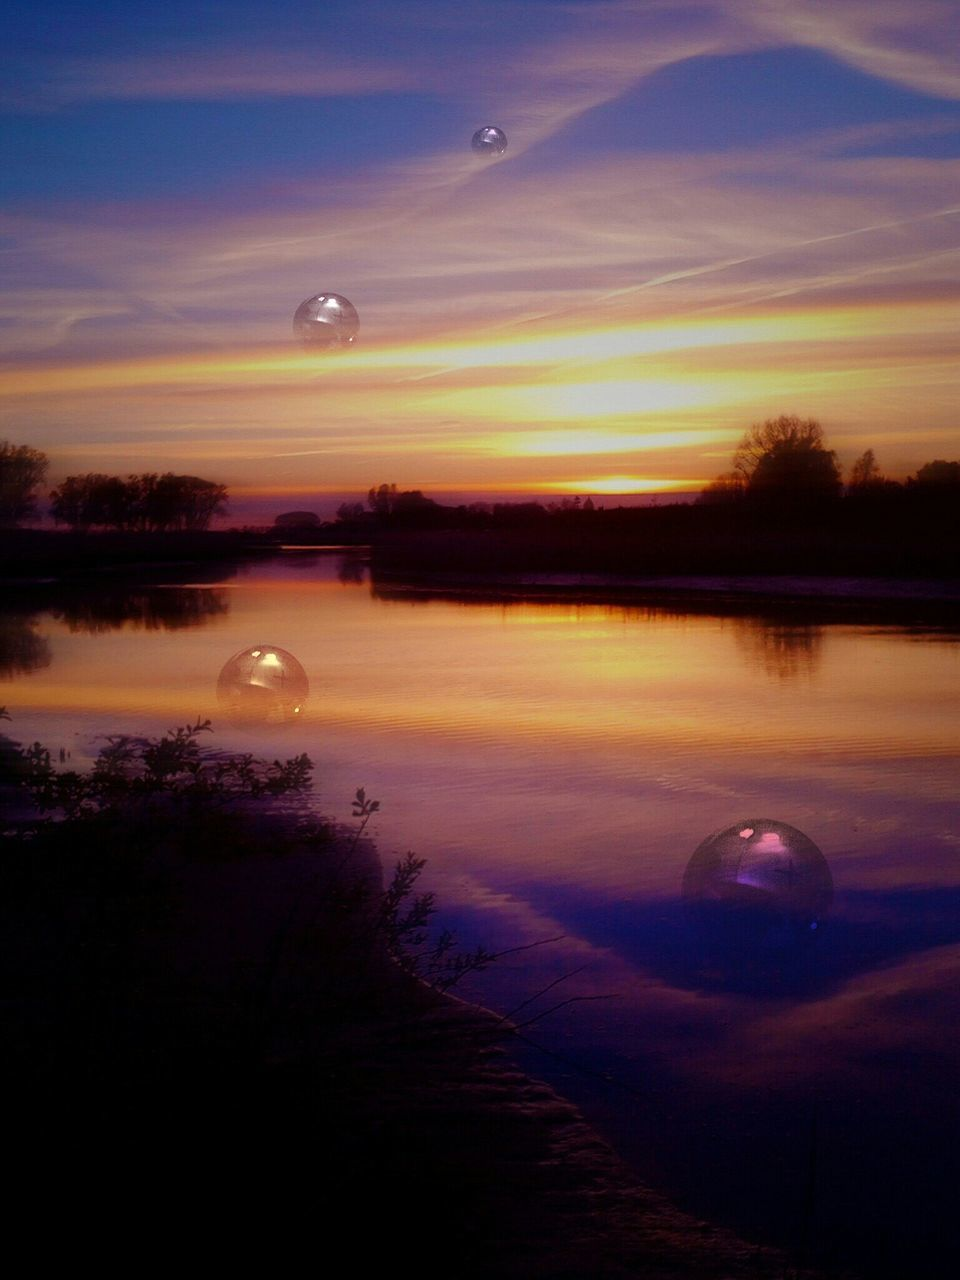 sunset, moon, water, tranquil scene, scenics, sky, nature, lake, tree, beauty in nature, reflection, no people, dusk, mid-air, tranquility, landscape, flying, outdoors, night, astronomy, hot air balloon, galaxy